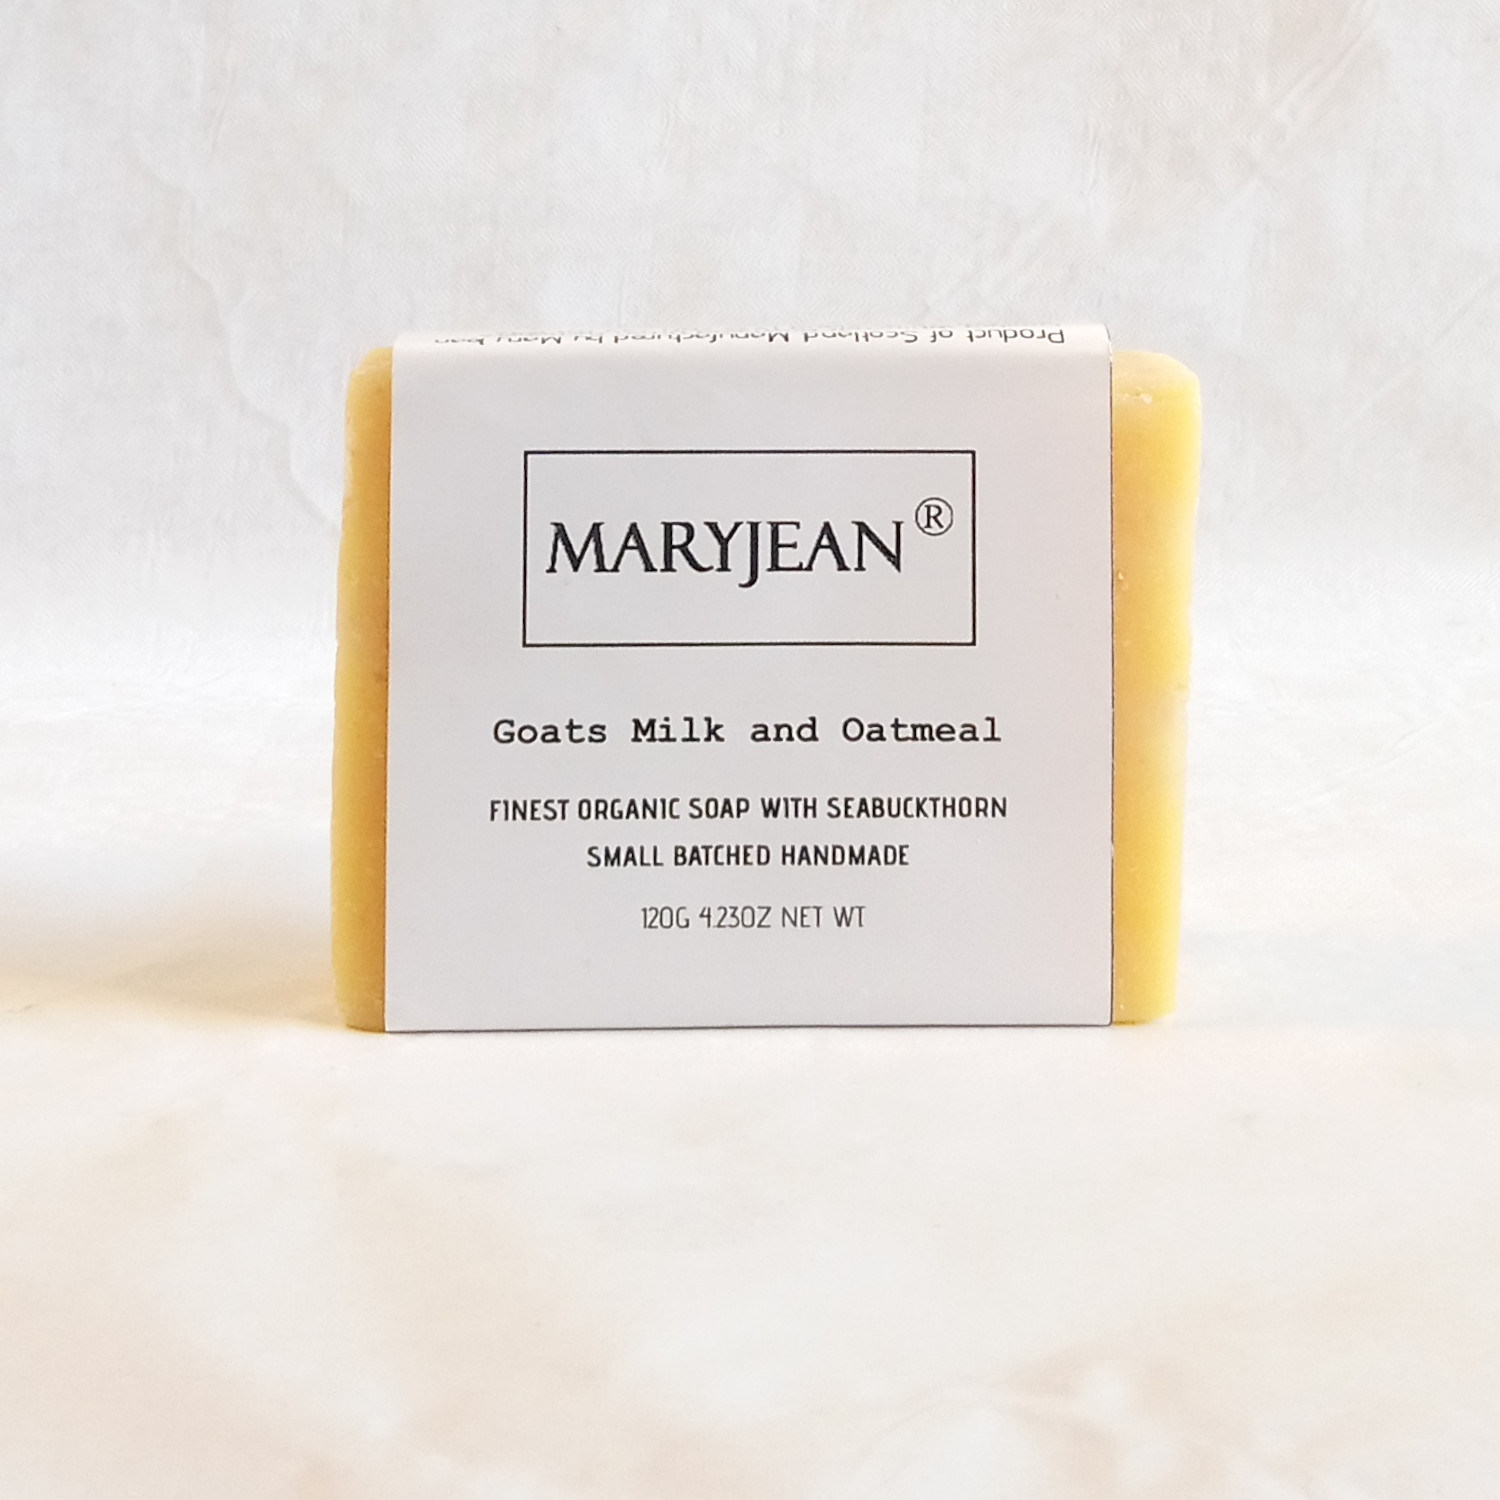 Organic Scottish Exfoliating Body Scrub Soap Handmade with Sea Buckthorn Gently exfoliates and polishing from oats and Goats milk skin damage is repaired boosted with Sea Buckthorn treating mature over 50s aged skin